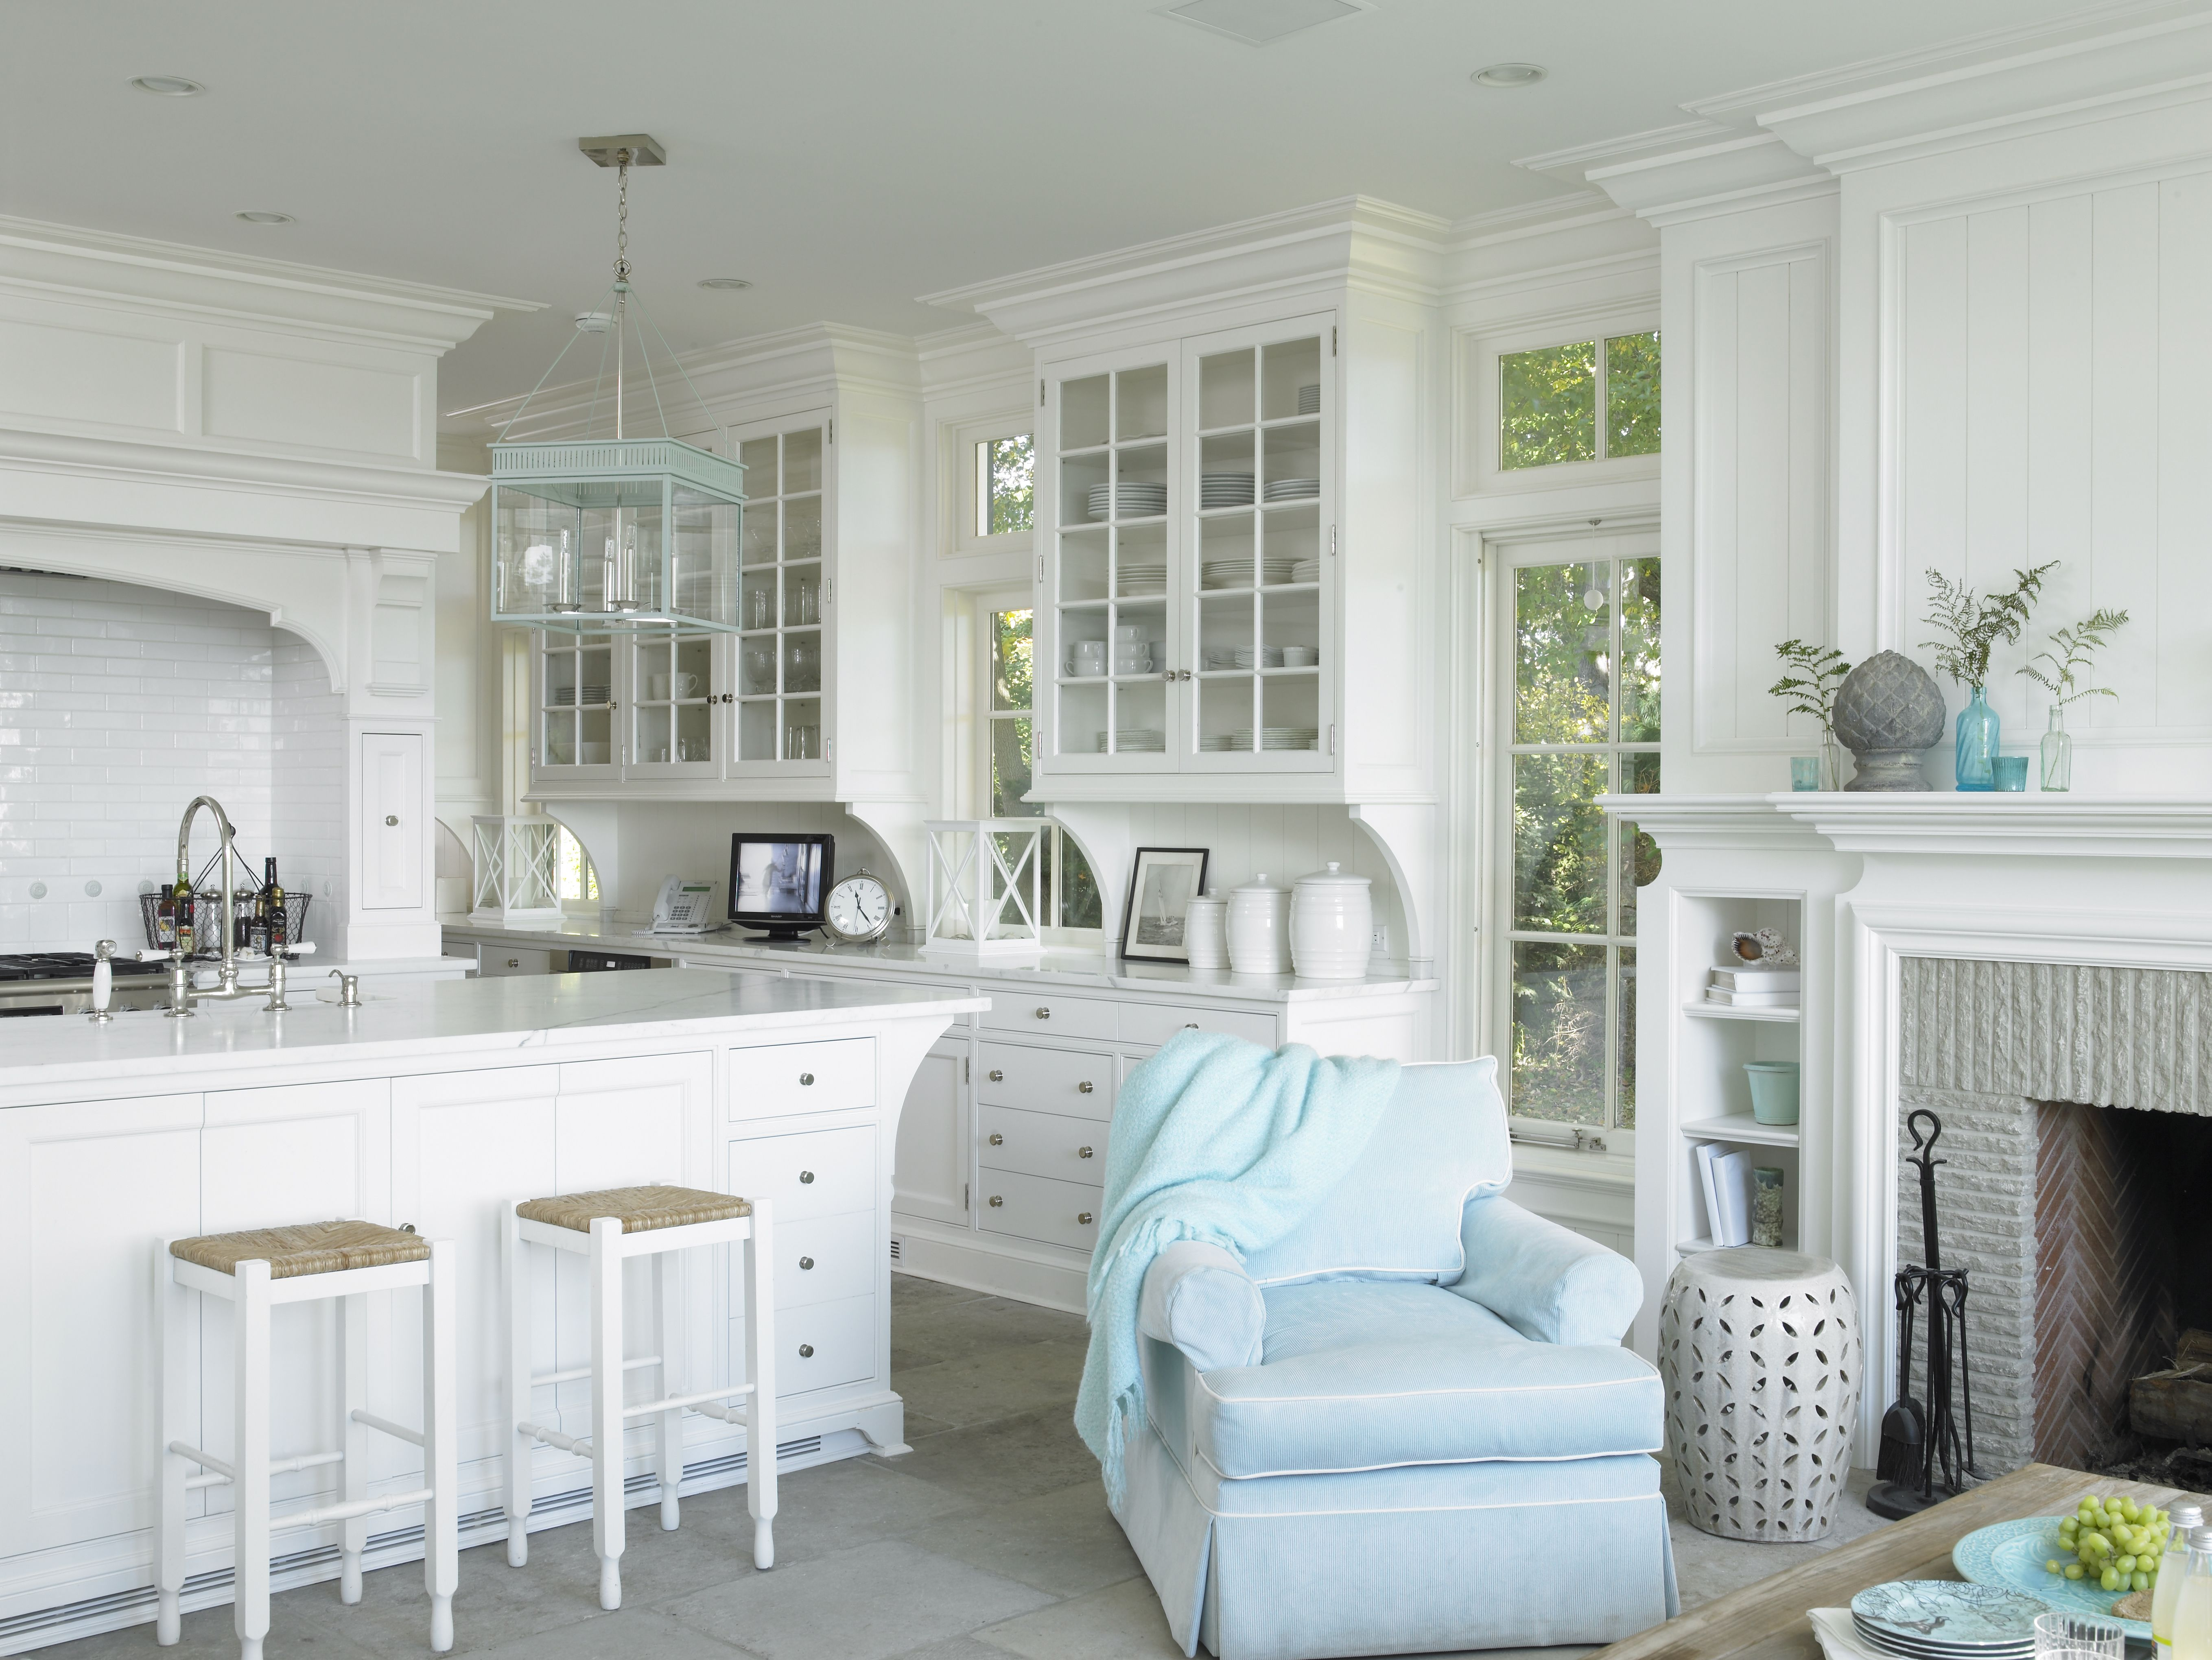 sold in road to historic beach your designers ways farmhouse home listed at the area kitchen rustic fairfield county style interior incorporate